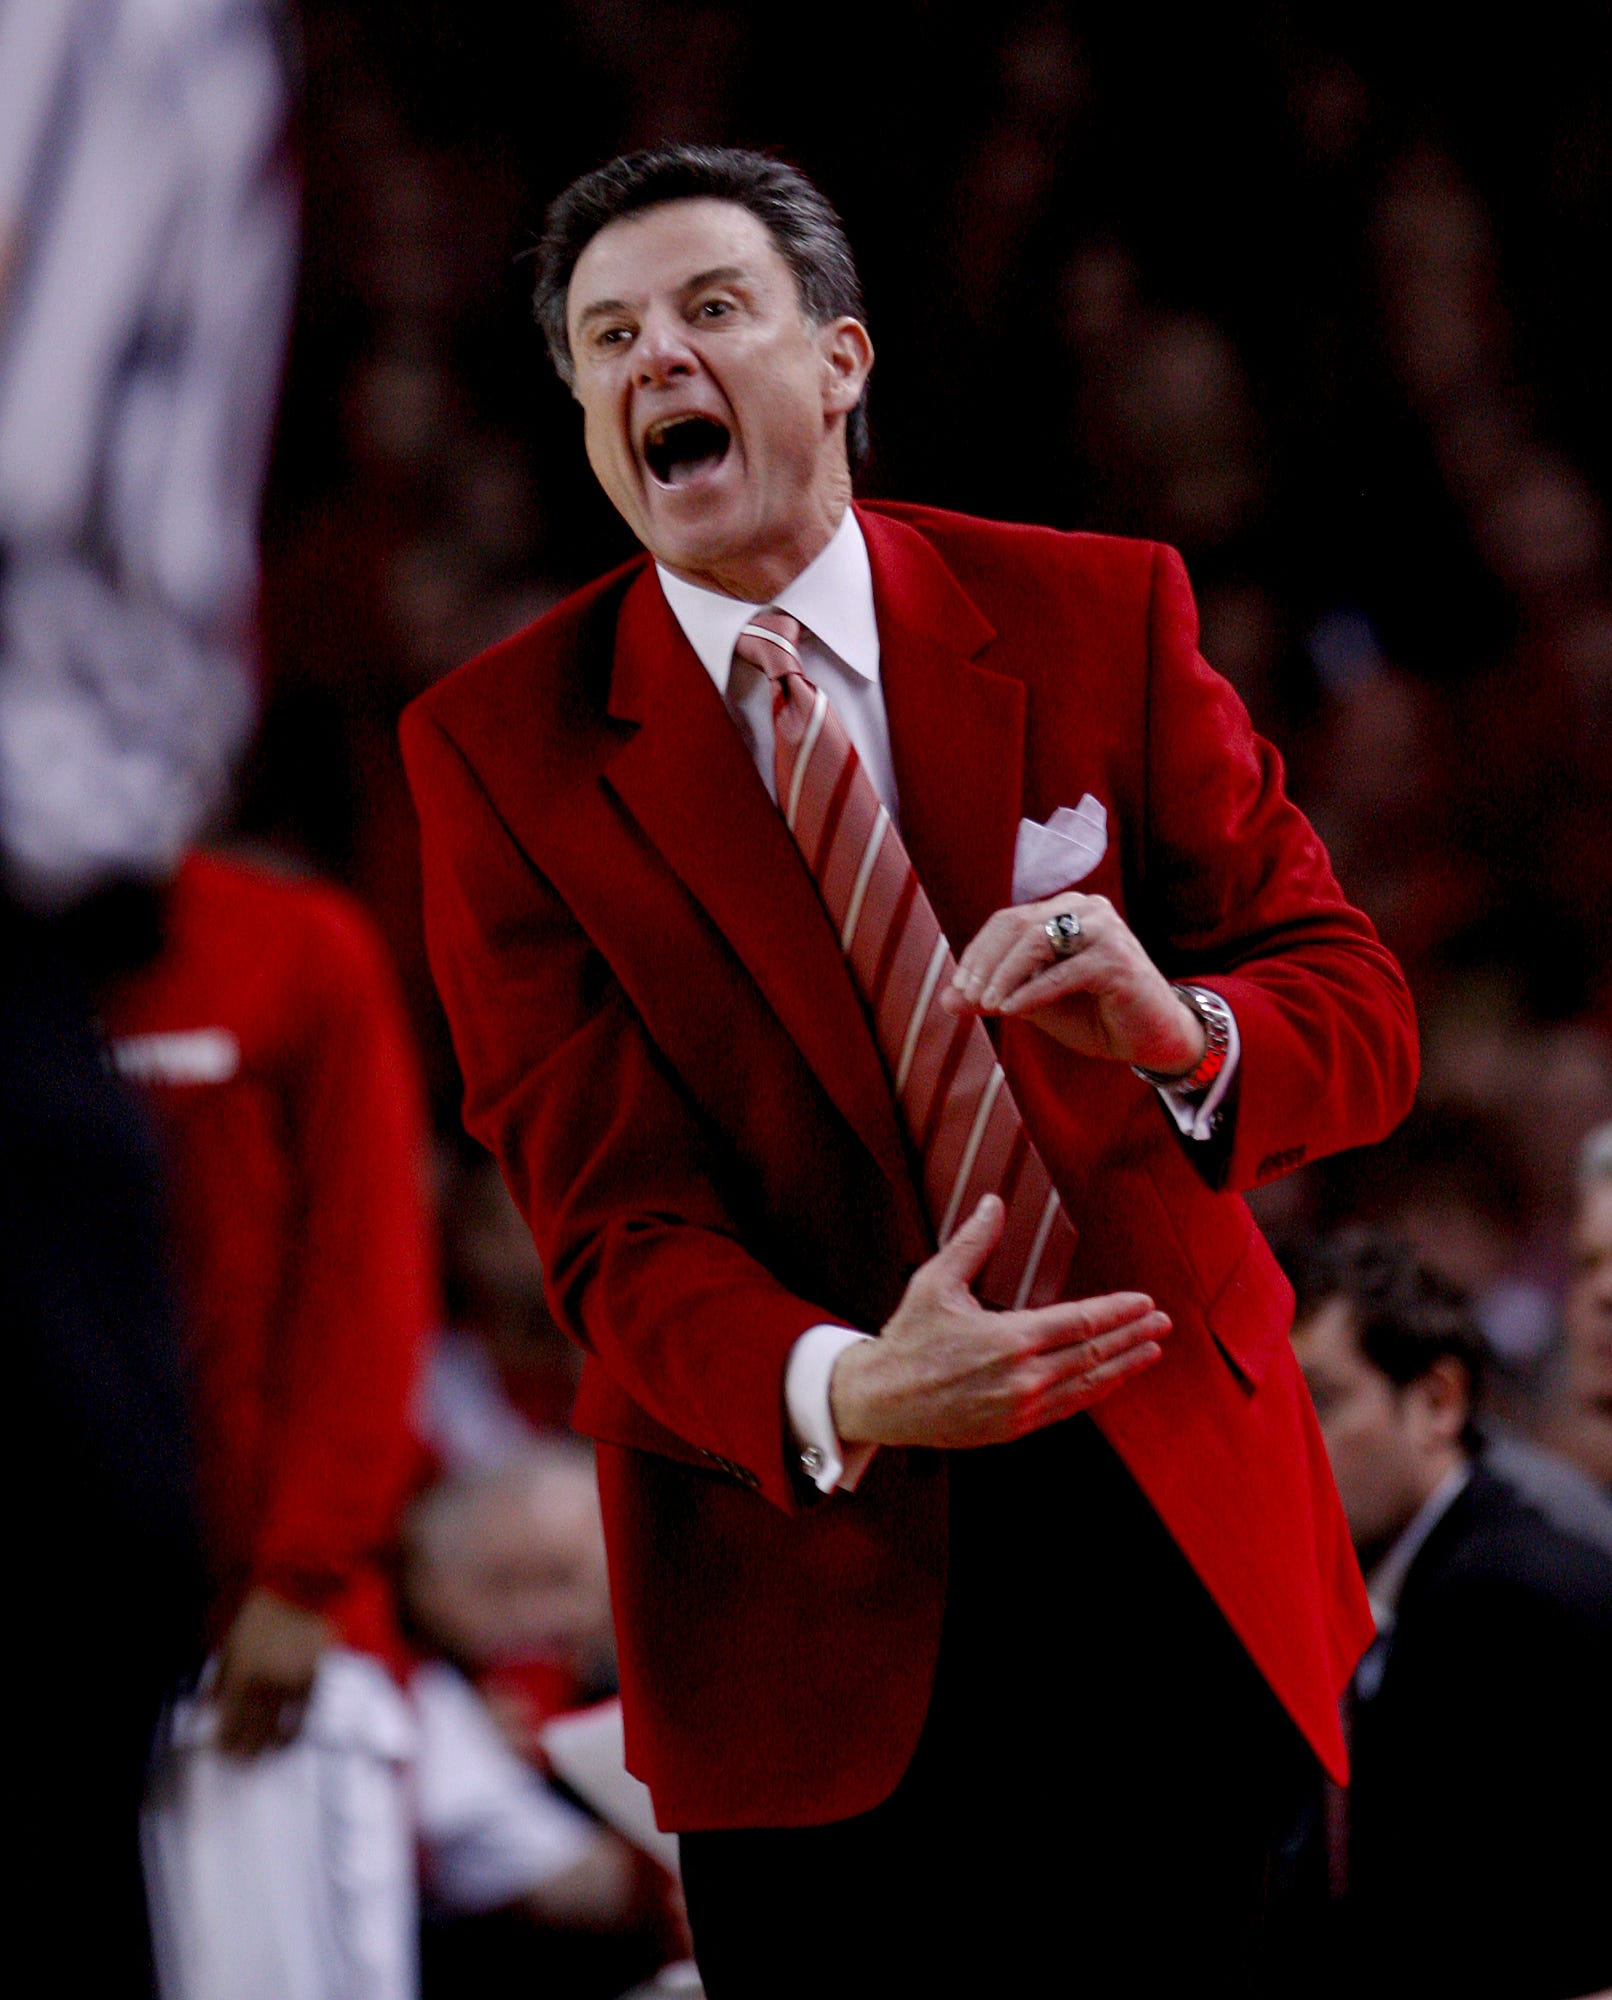 Hall of Fame coach Rick Pitino calls for college basketball season to be pushed back to January